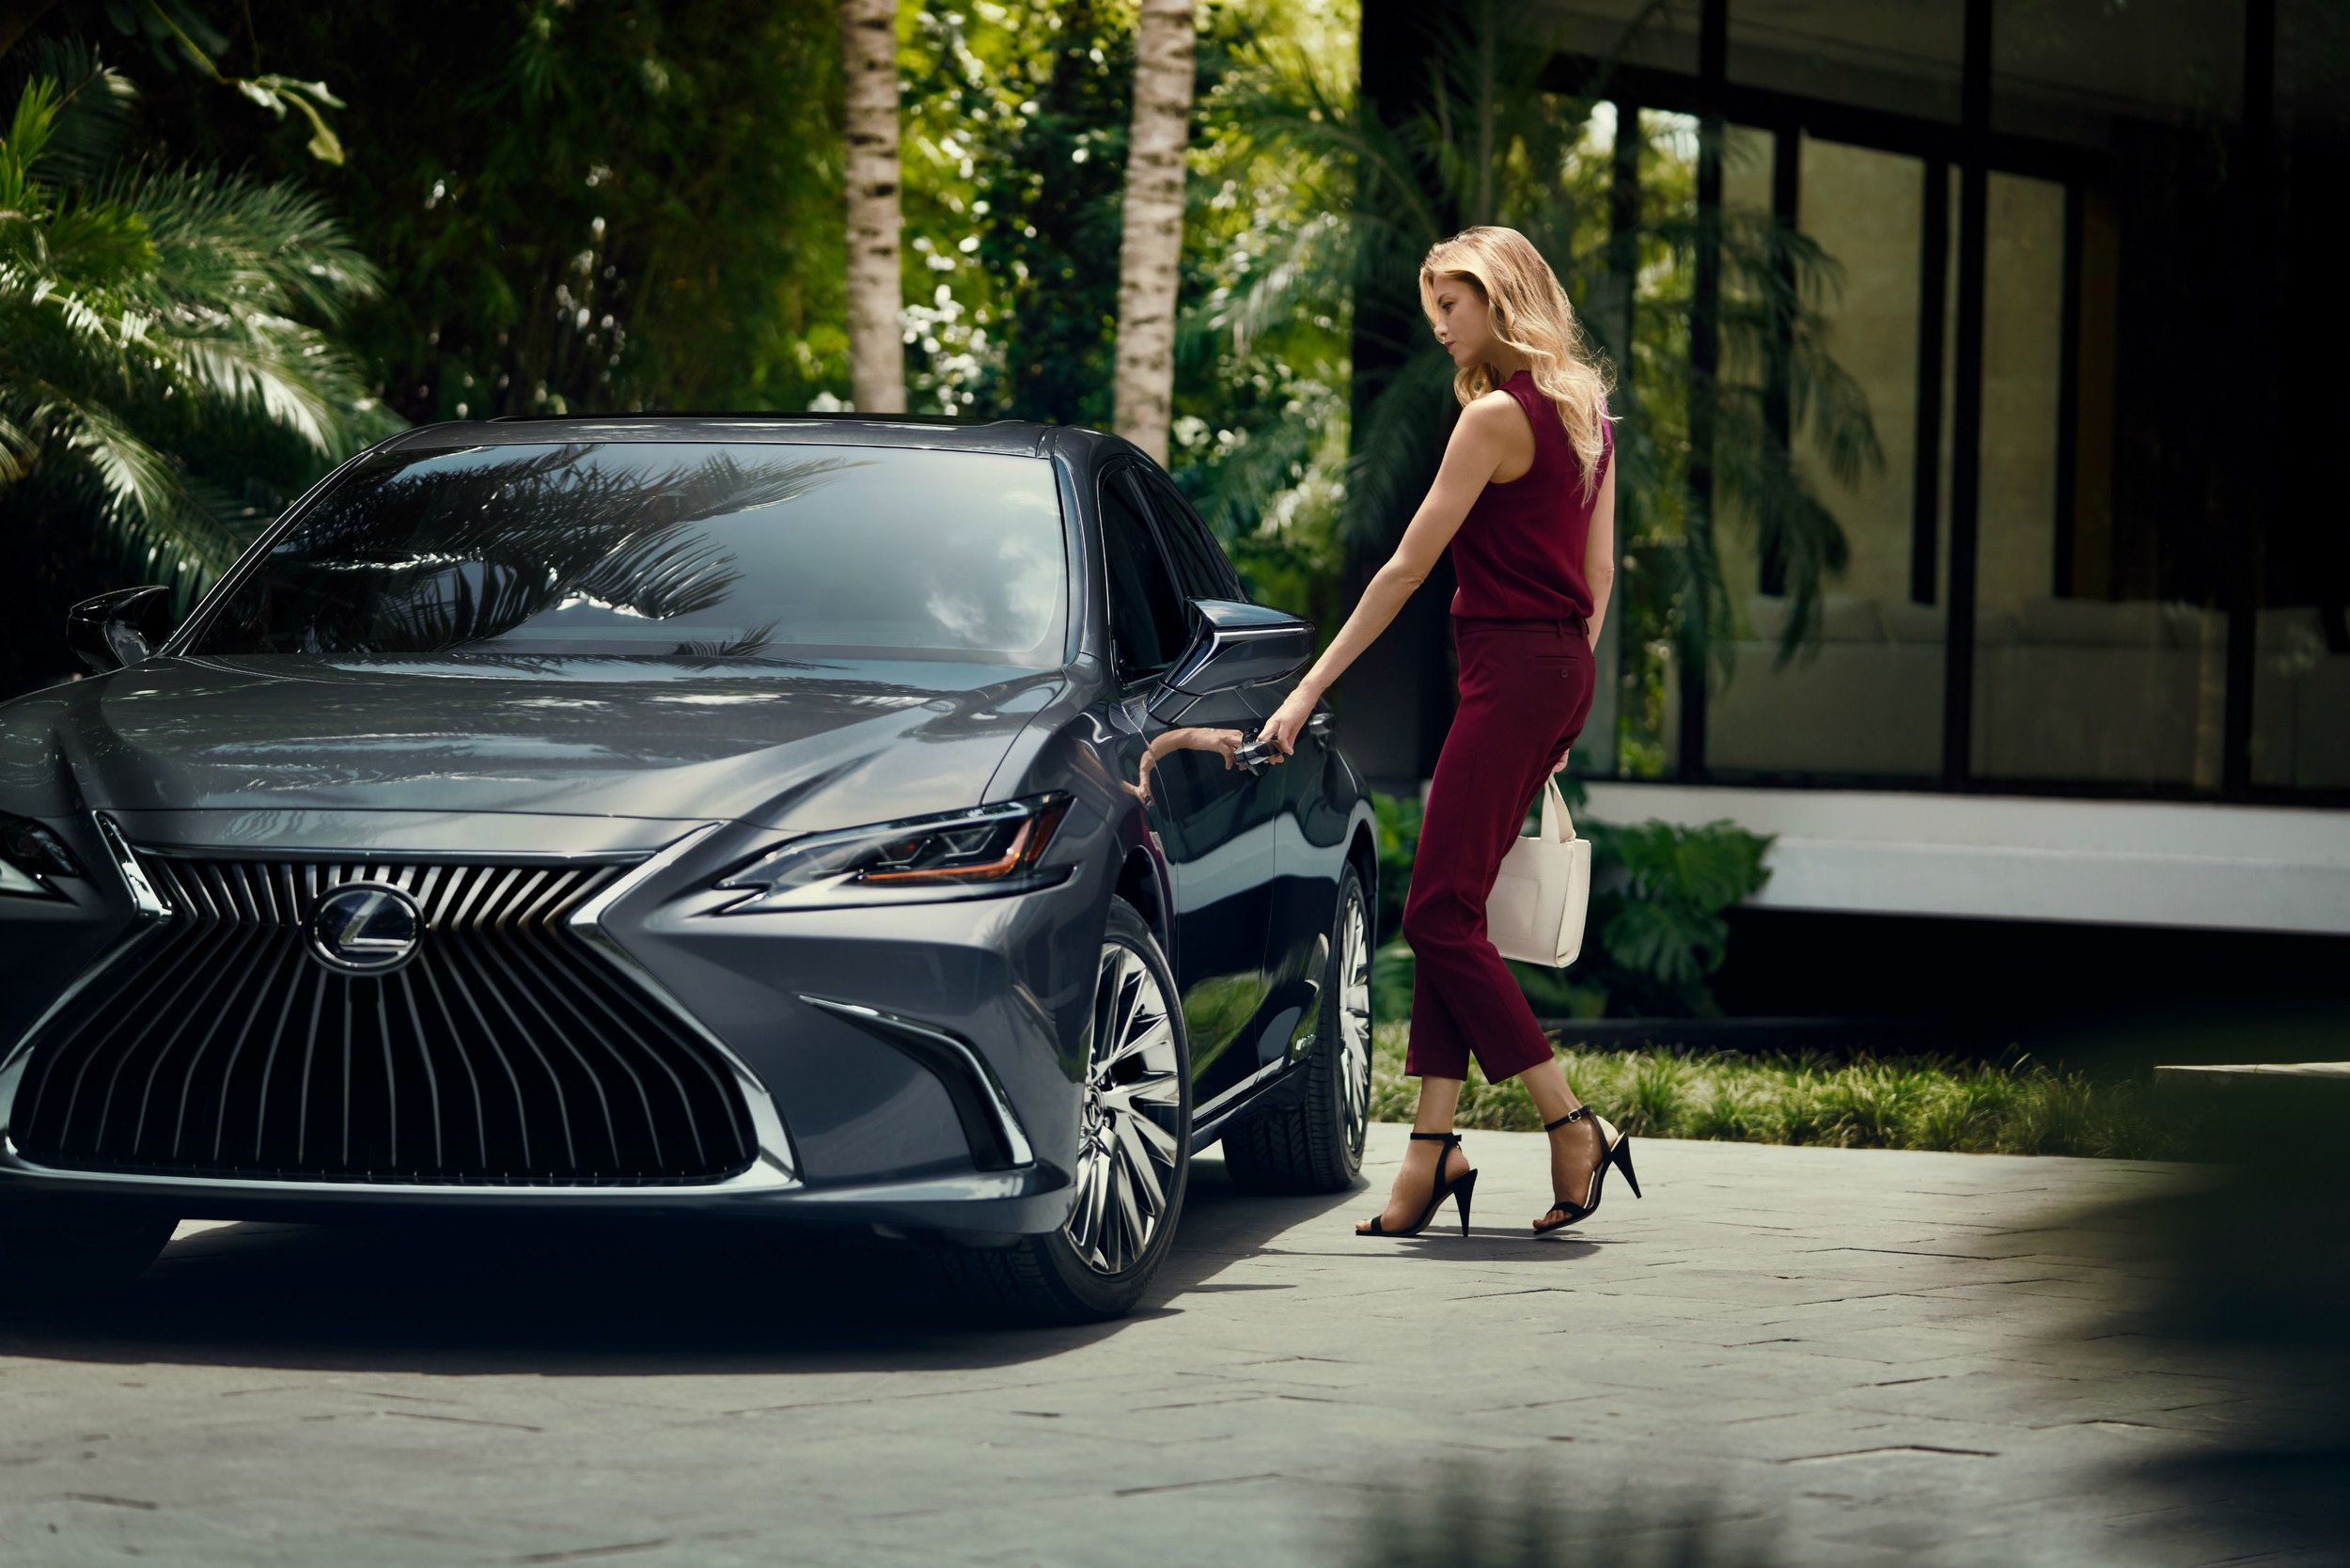 Lexus, from its engineers to its customer service team, practices the Japanese tradition of Omotenashi. It implies an insightful understanding of customer wants and needs, and the thoughtful caring about each customer's well being – treating people as true individuals, the essence of their psychic premium.